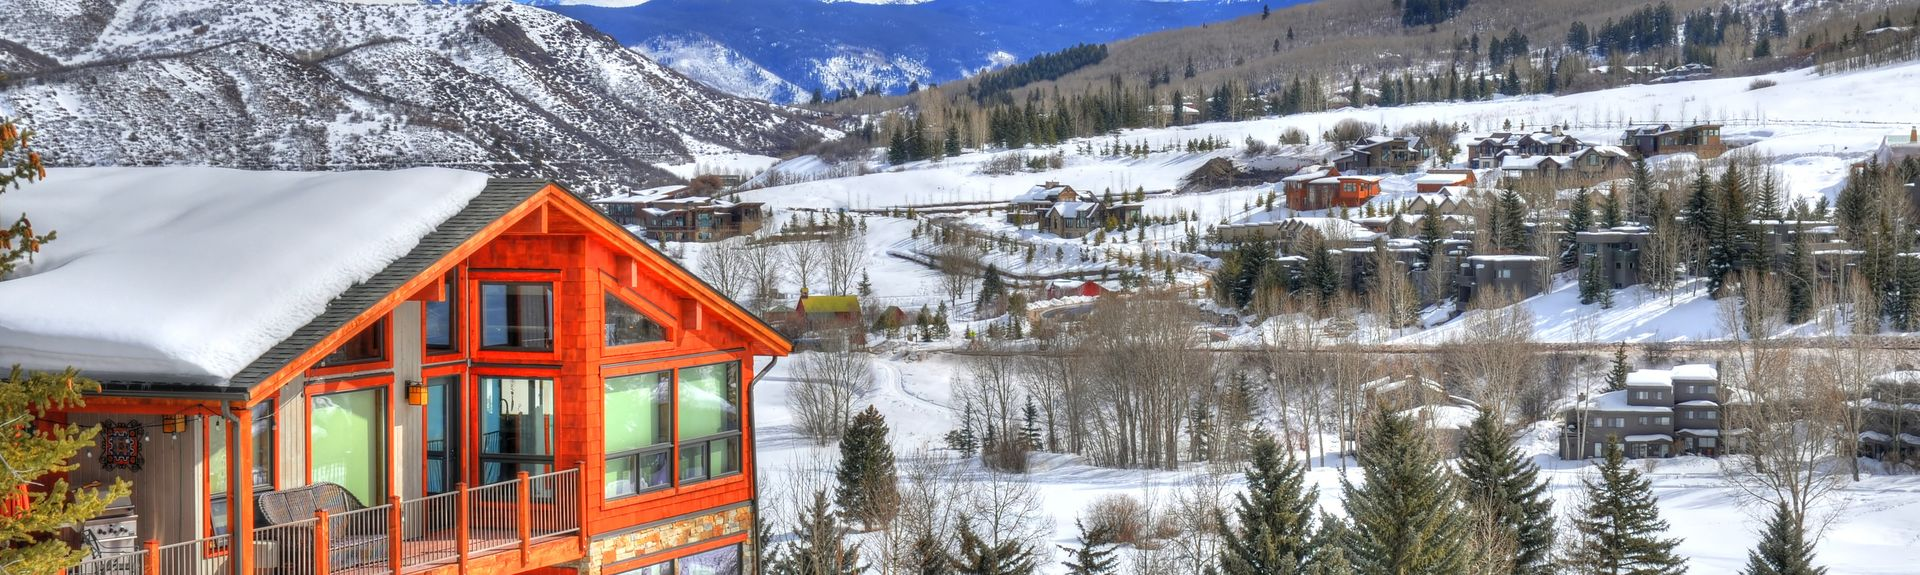 Snowmass, Snowmass Village, Colorado, United States of America